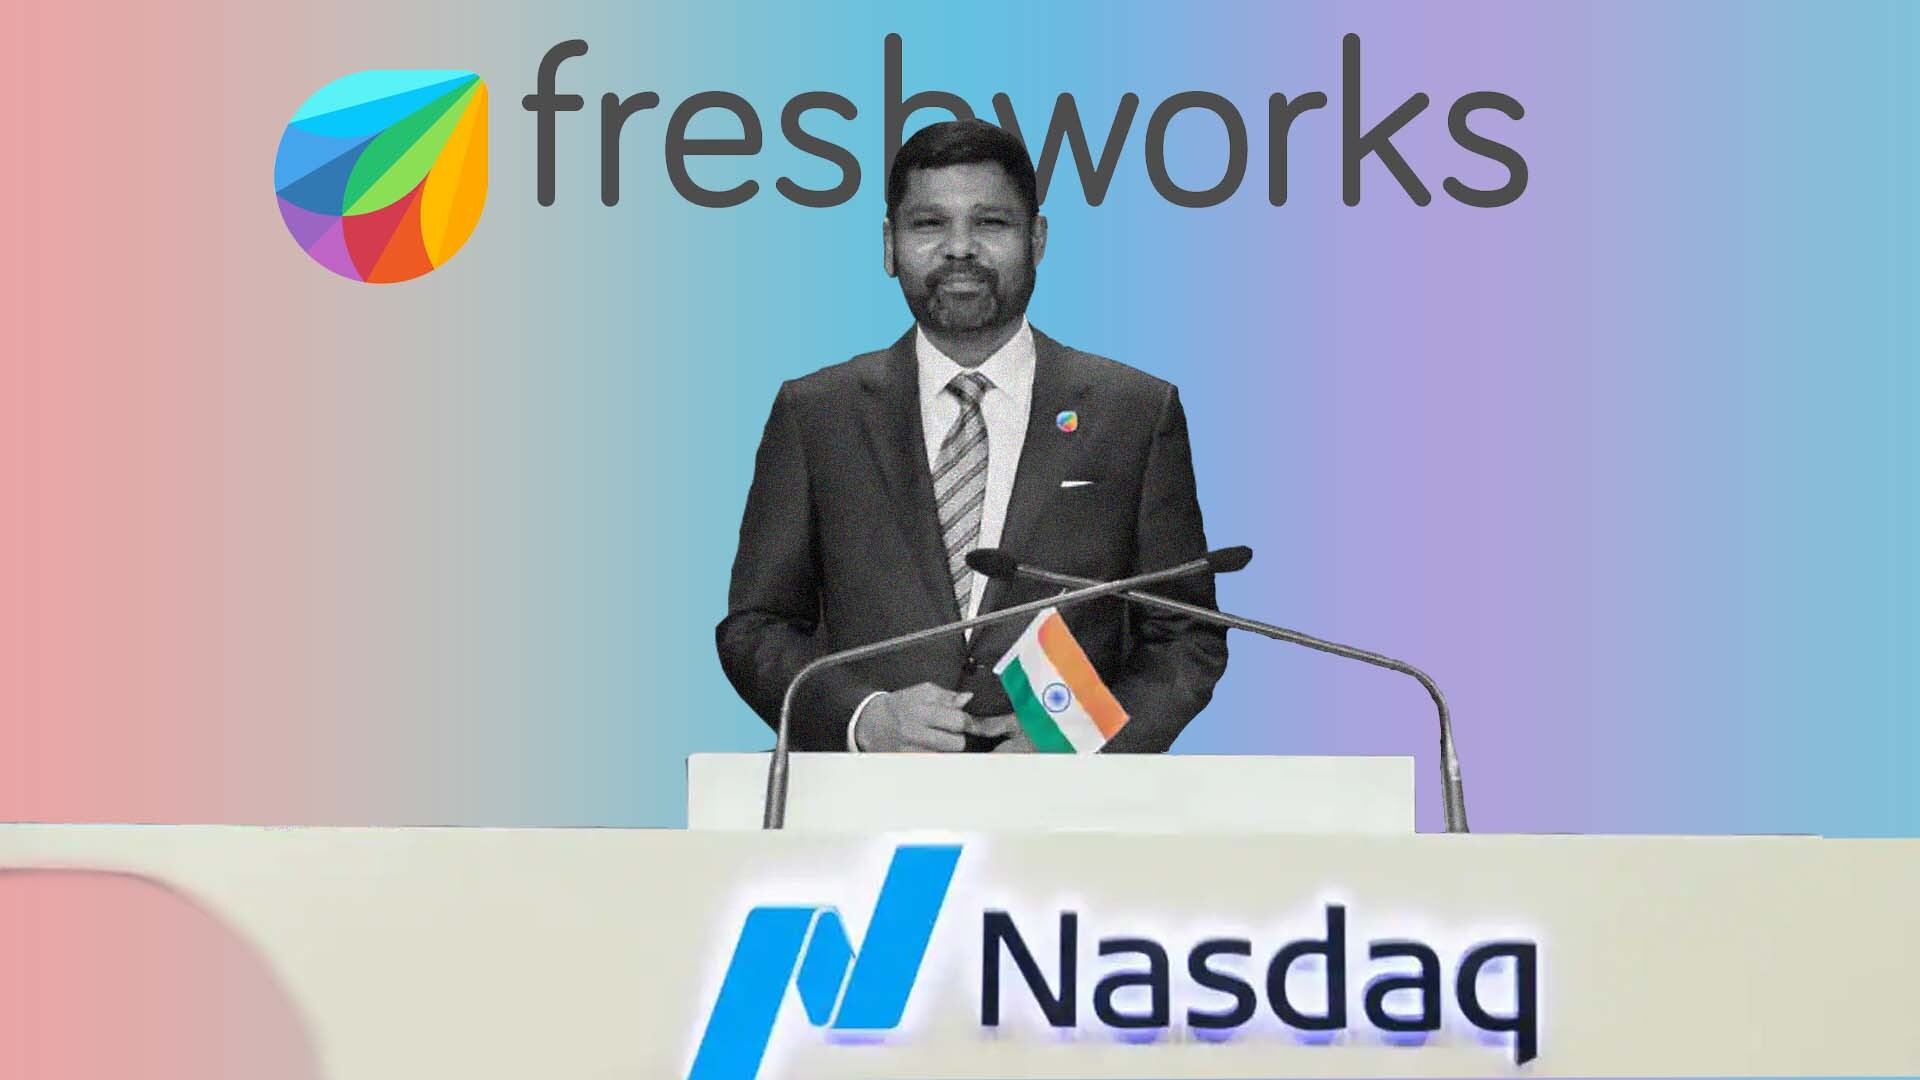 Freshworks IPO creates more than 500 crorepatis in India, with 70 of them aged below 30